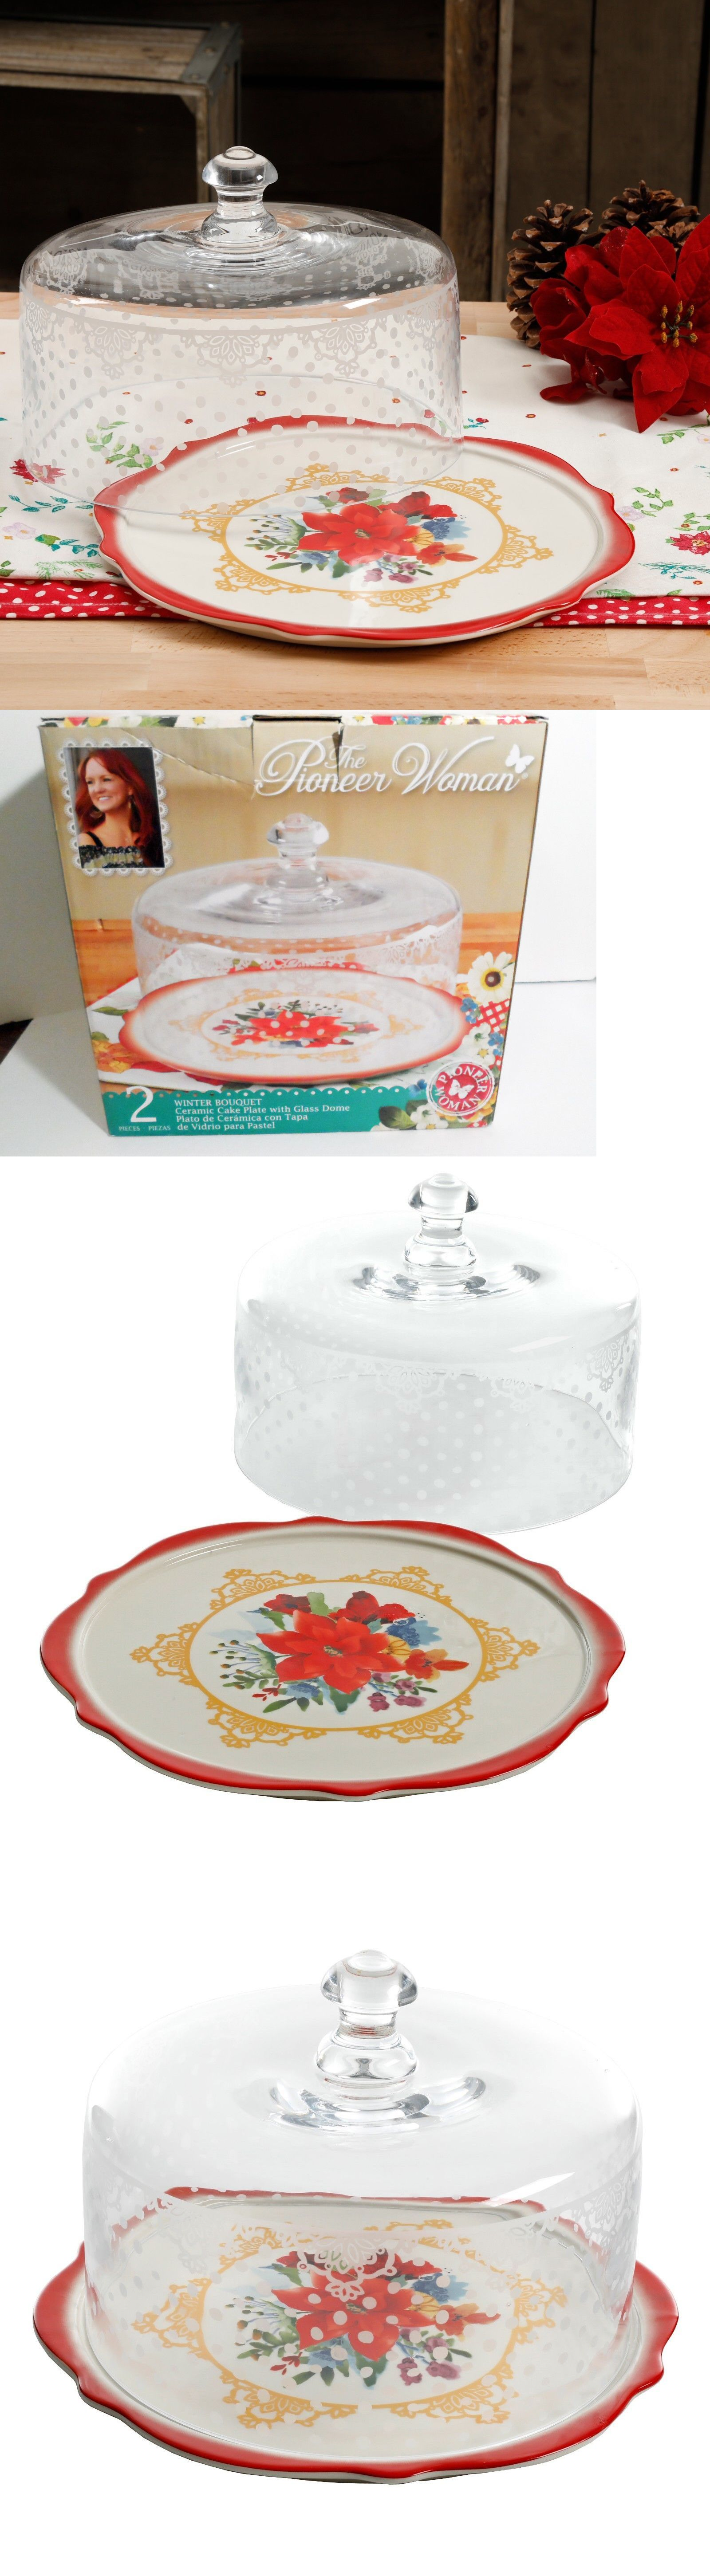 Cake stands 177010 the pioneer woman winter bouquet